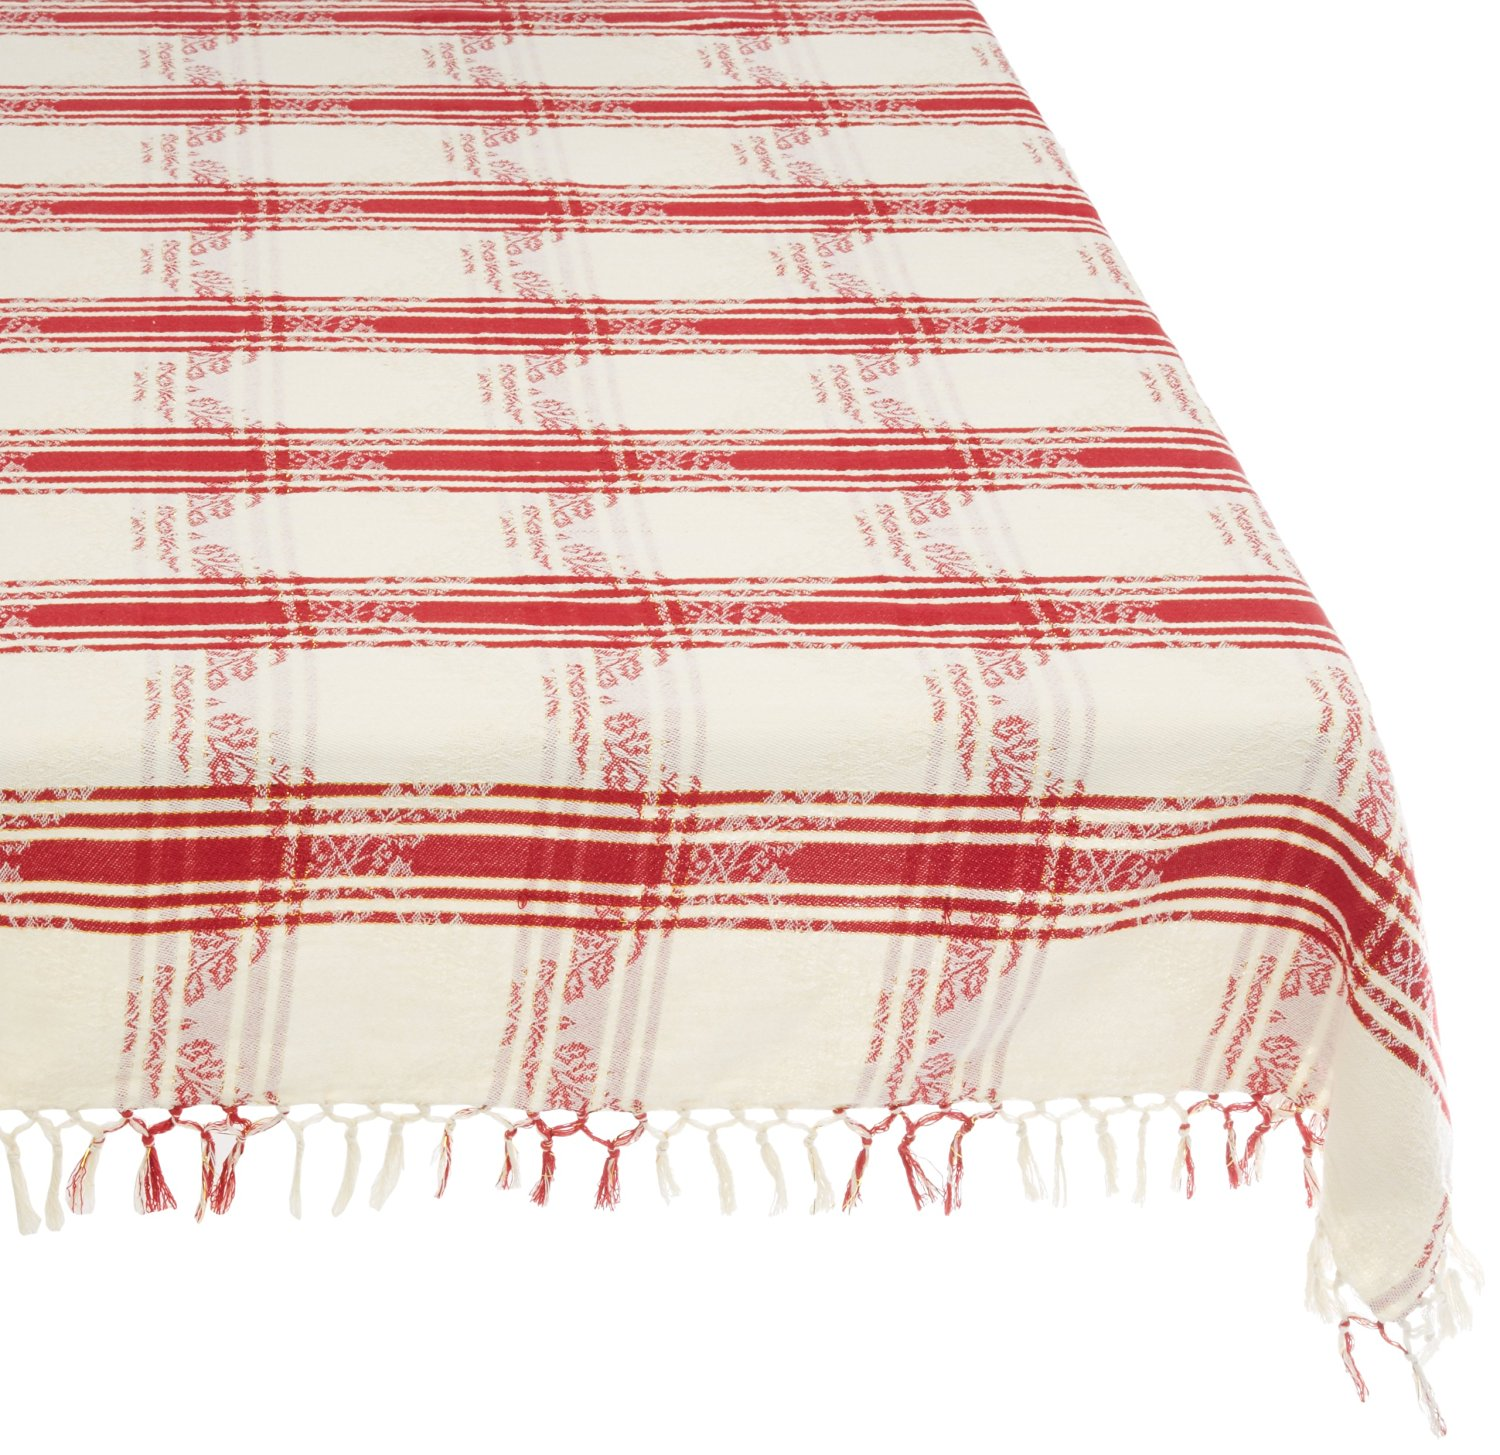 Mahogany Holly Rectangle Jacquard Tablecloth, 60 by 90-Inch, White Plaid with Lurex Strips and Red Plaid